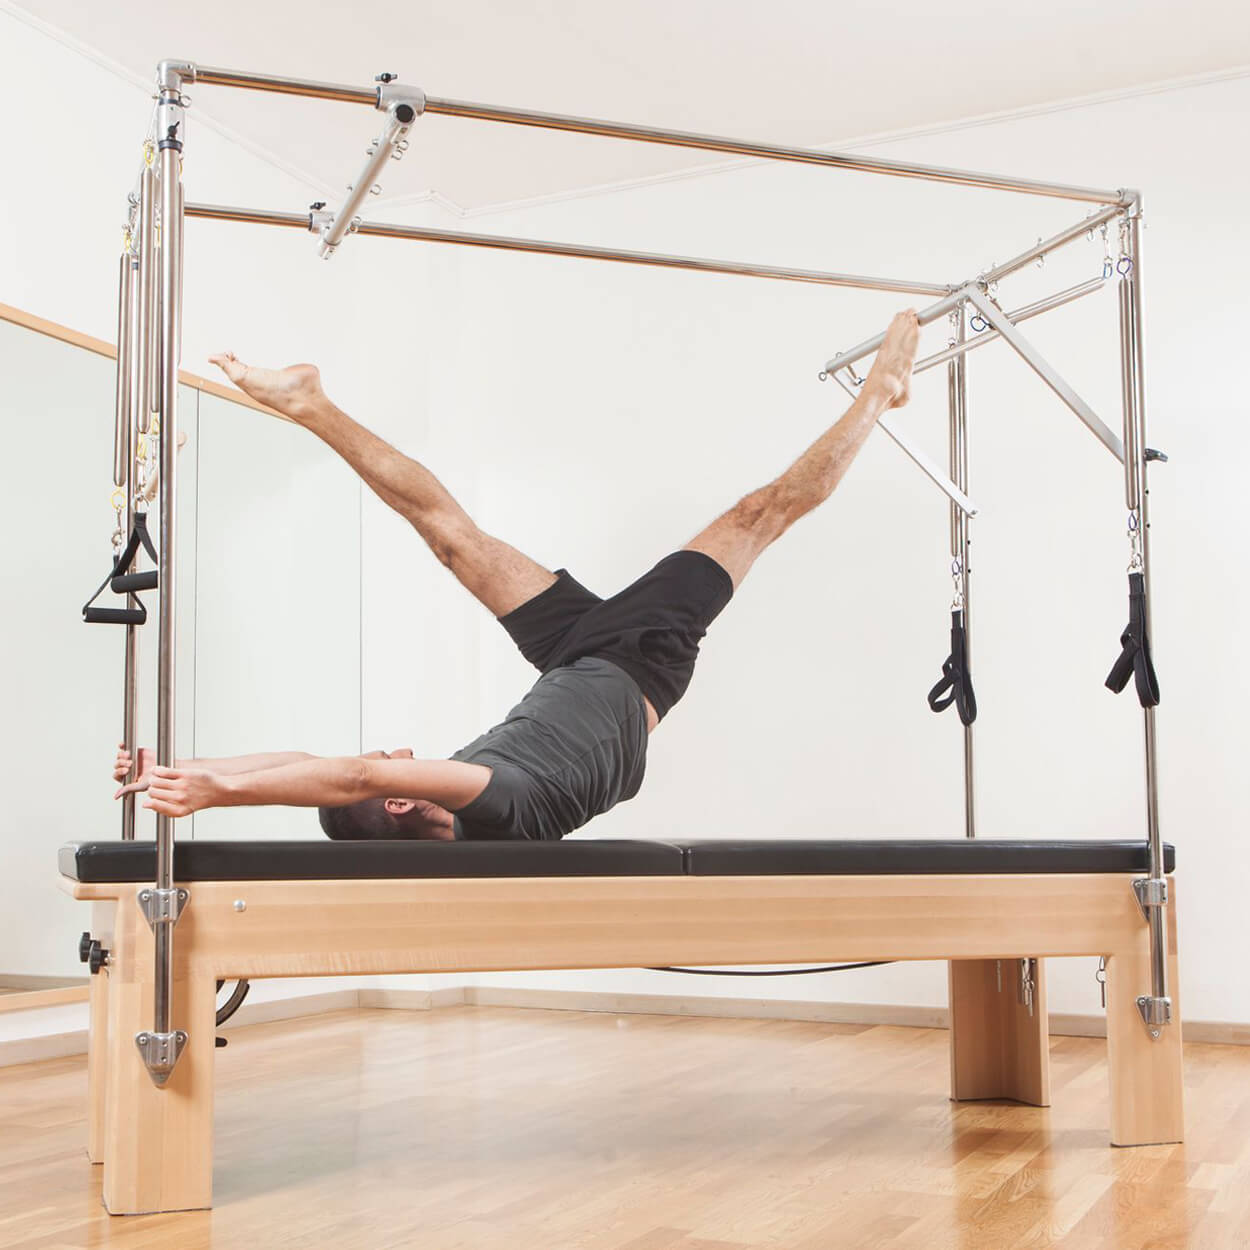 The Pilates Cadillac: The Most Versatile Pilates Training Tool - Pilates Reformers Plus